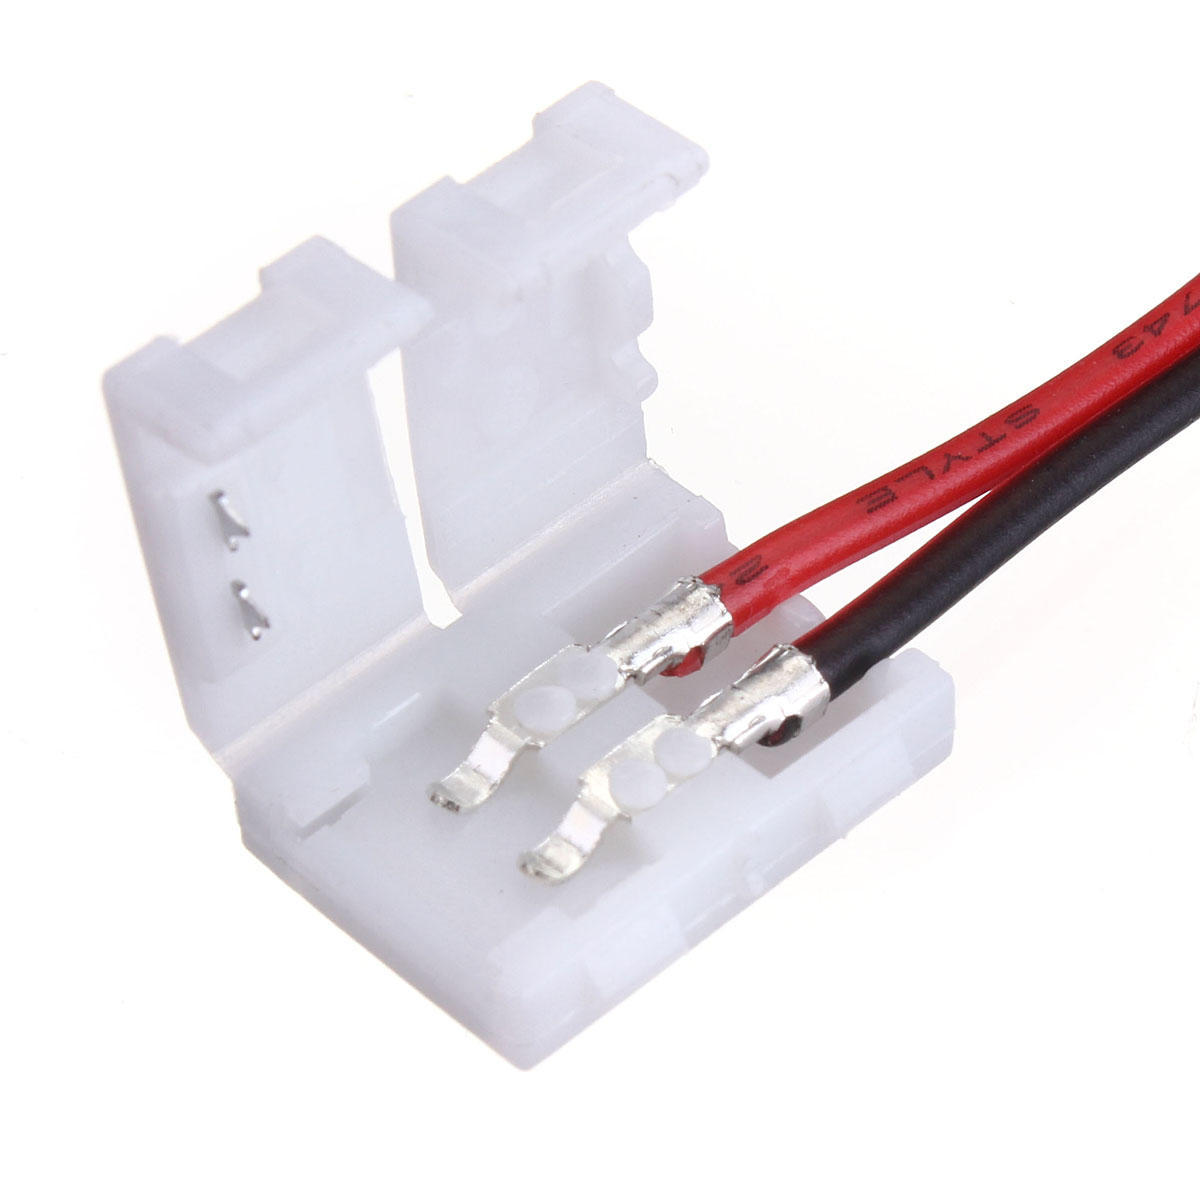 5x10mm 5050 LED Light Strip to Wire Connector PCB Adapter 2Pin White